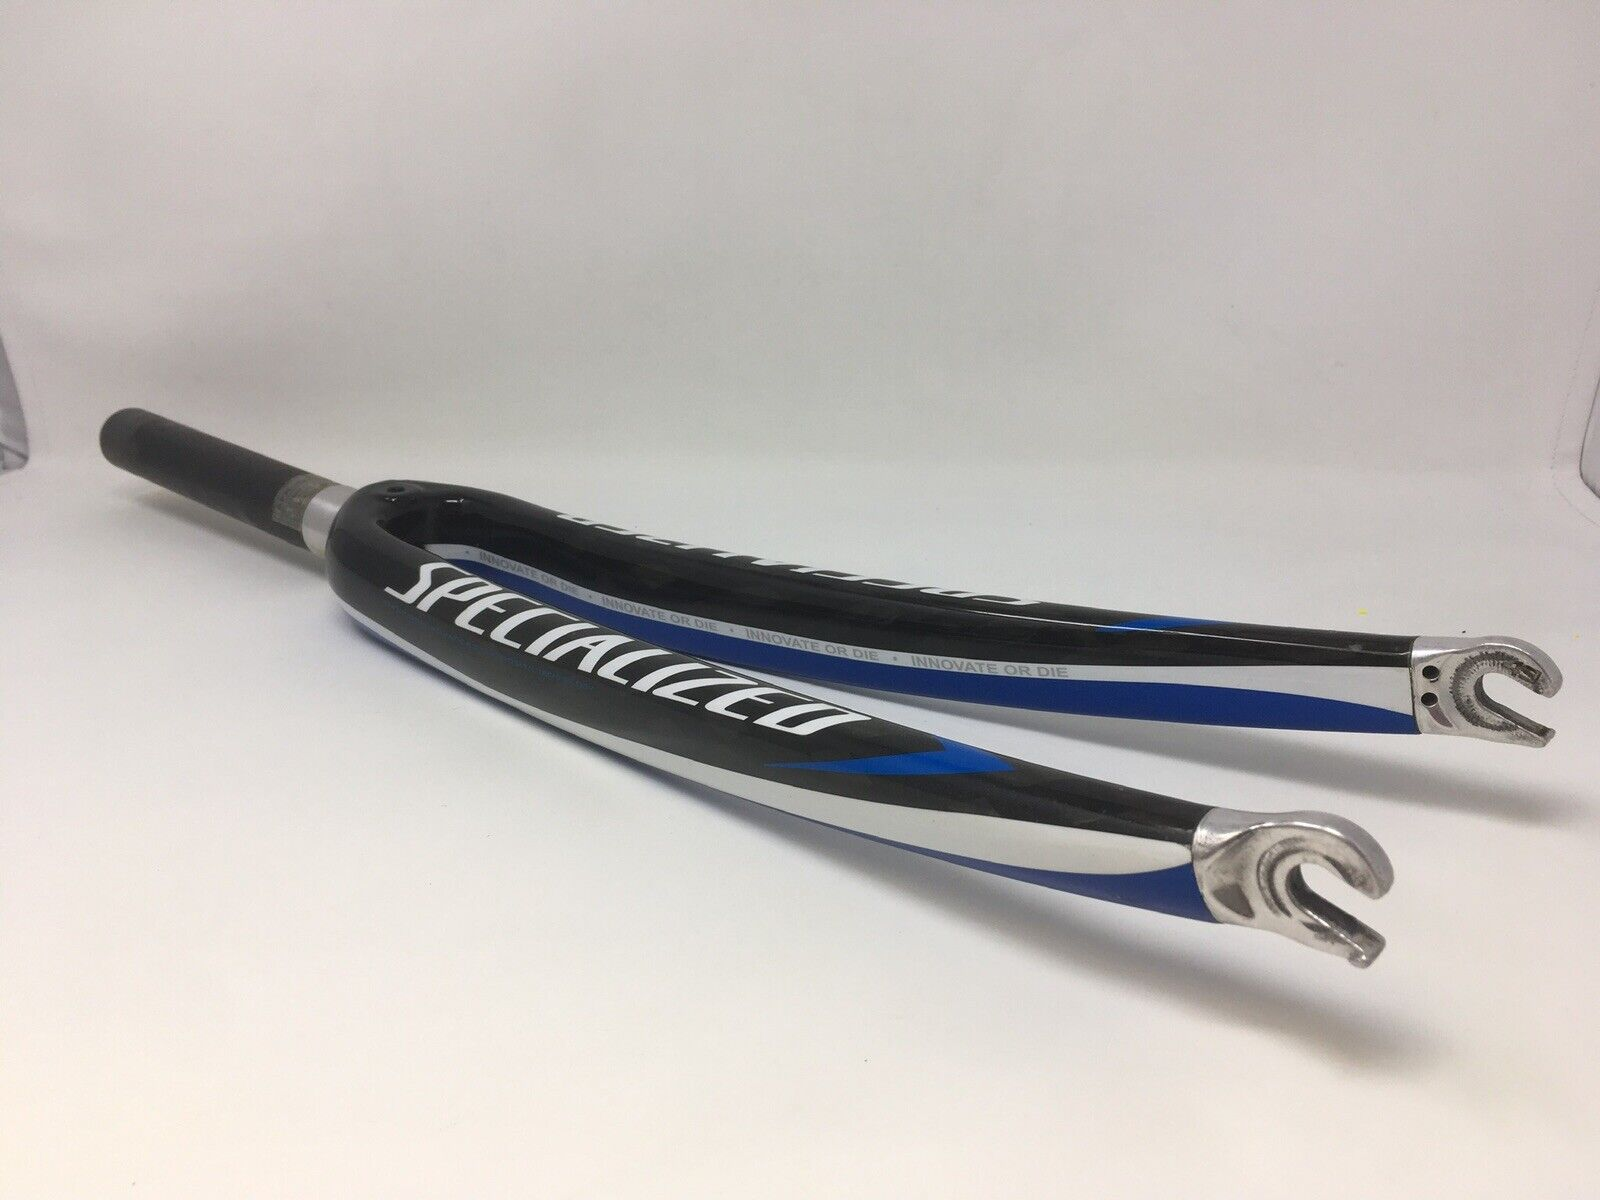 SPECIALIZED Tarmac Straight 1-1 8  Carbon Fork 194mm Steerer 43mm Rake PRE-OWNED